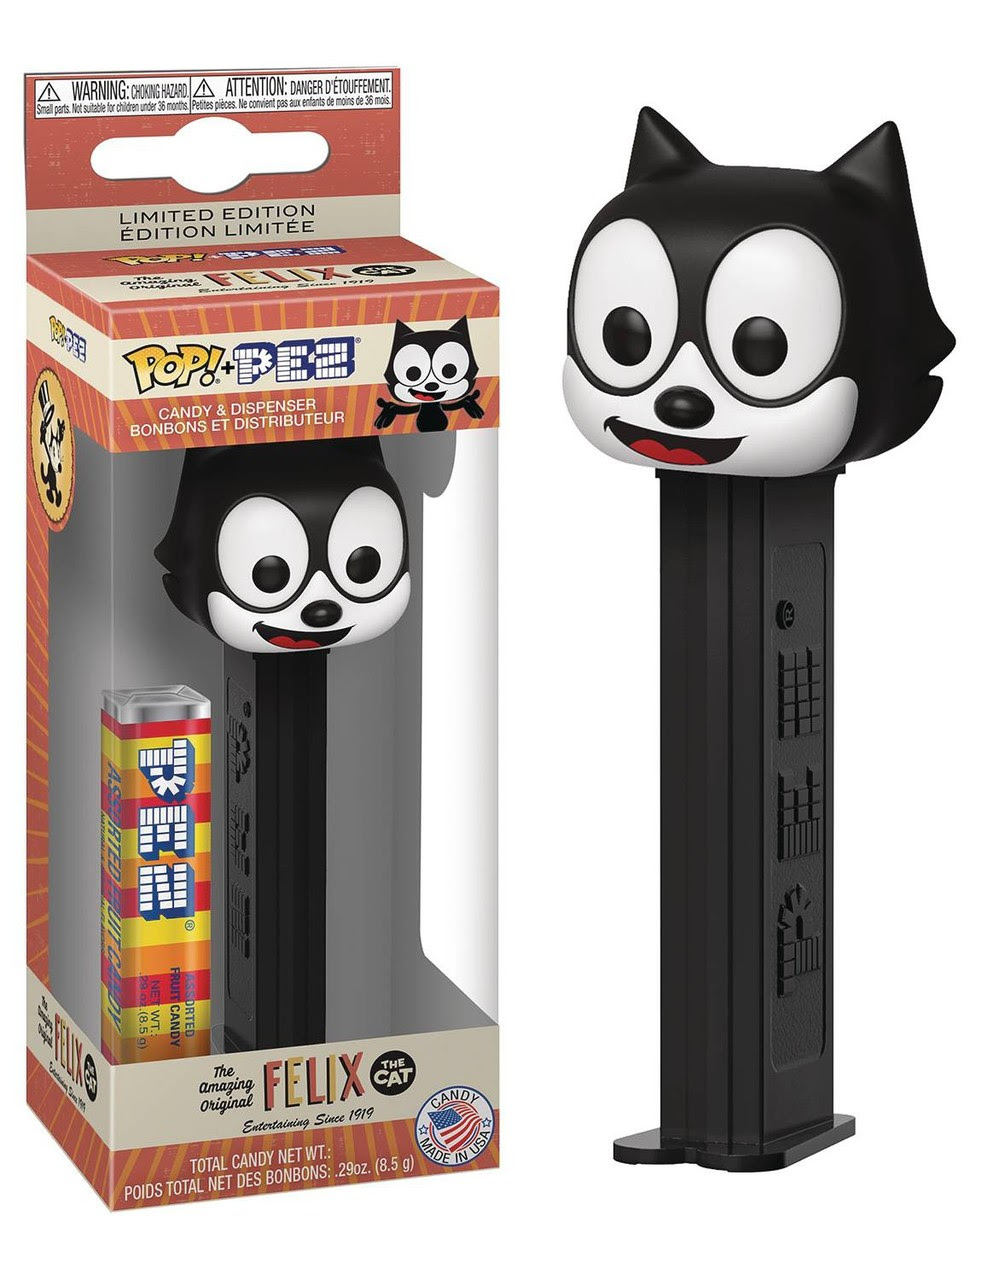 Felix The Cat Day Reveals New Collections From Funko